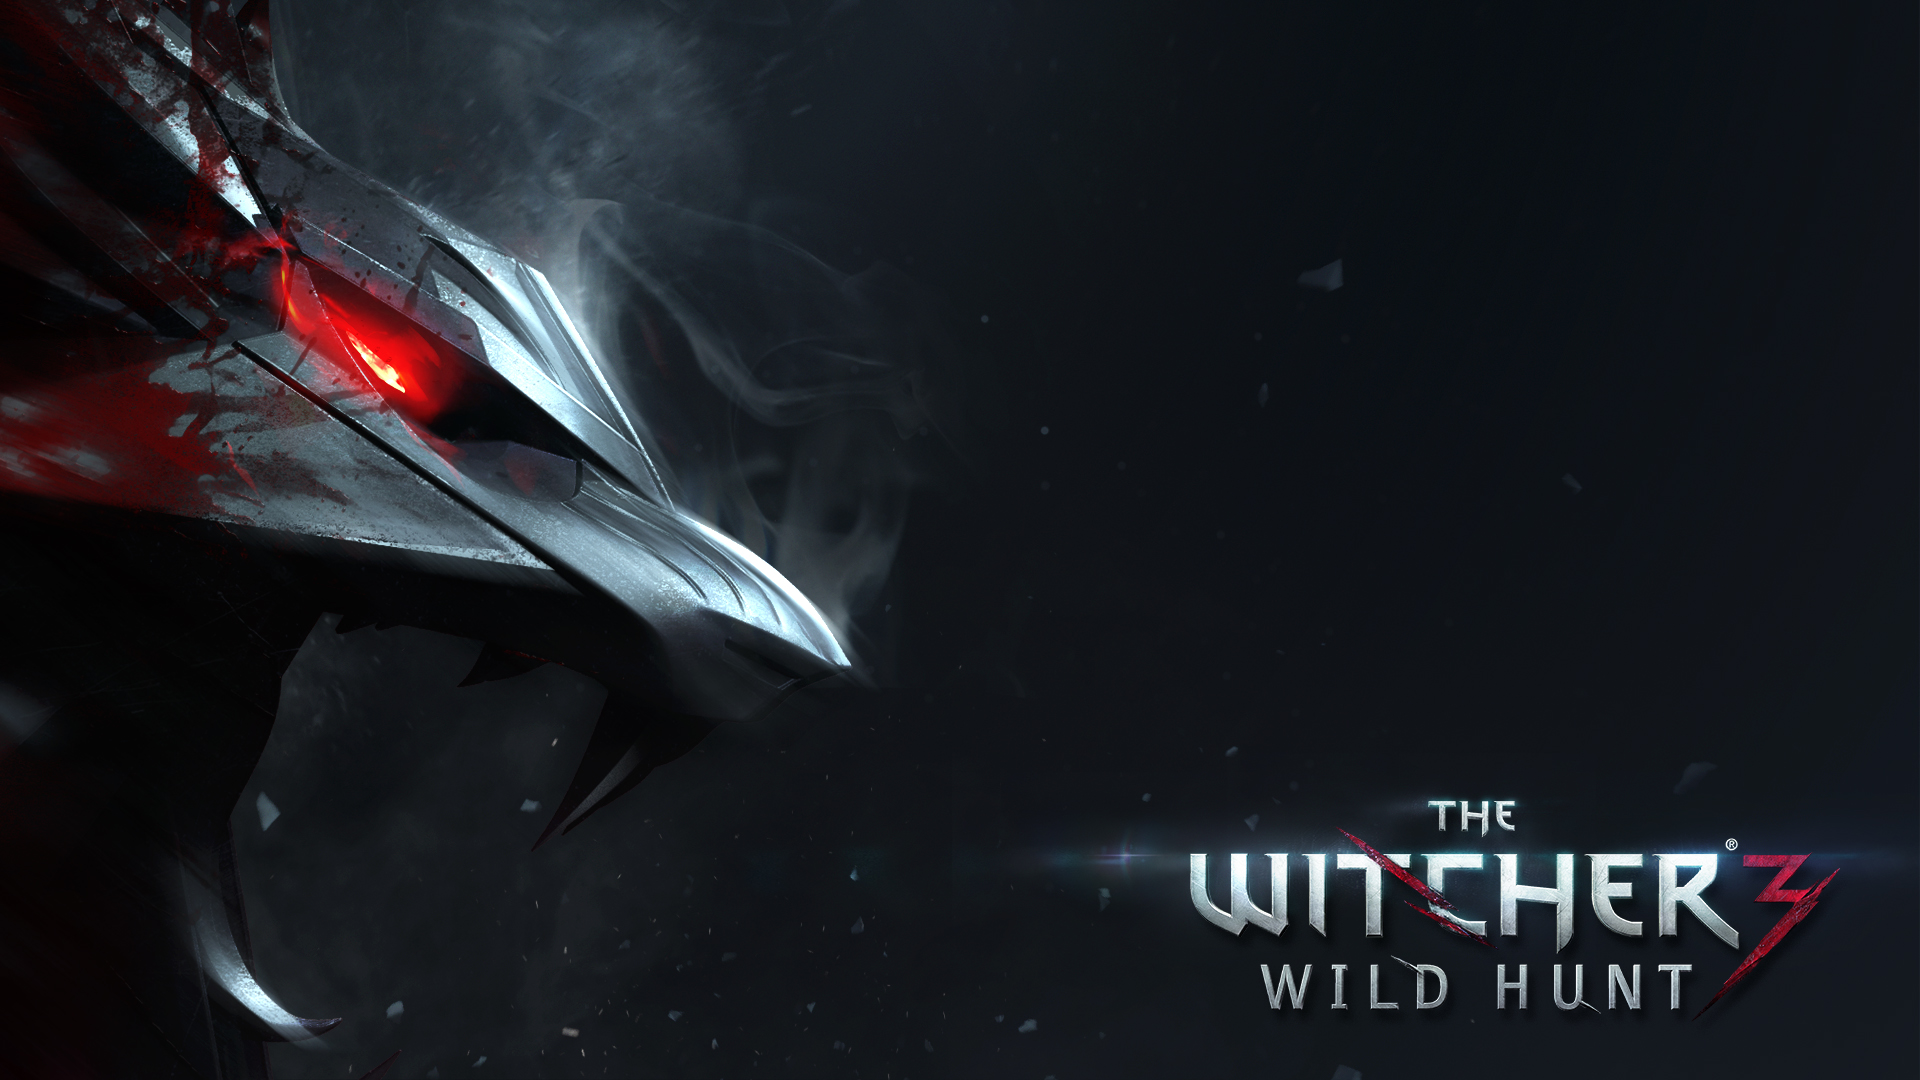 the witcher 3 wild hunt hd wallpaper | hd latest wallpapers